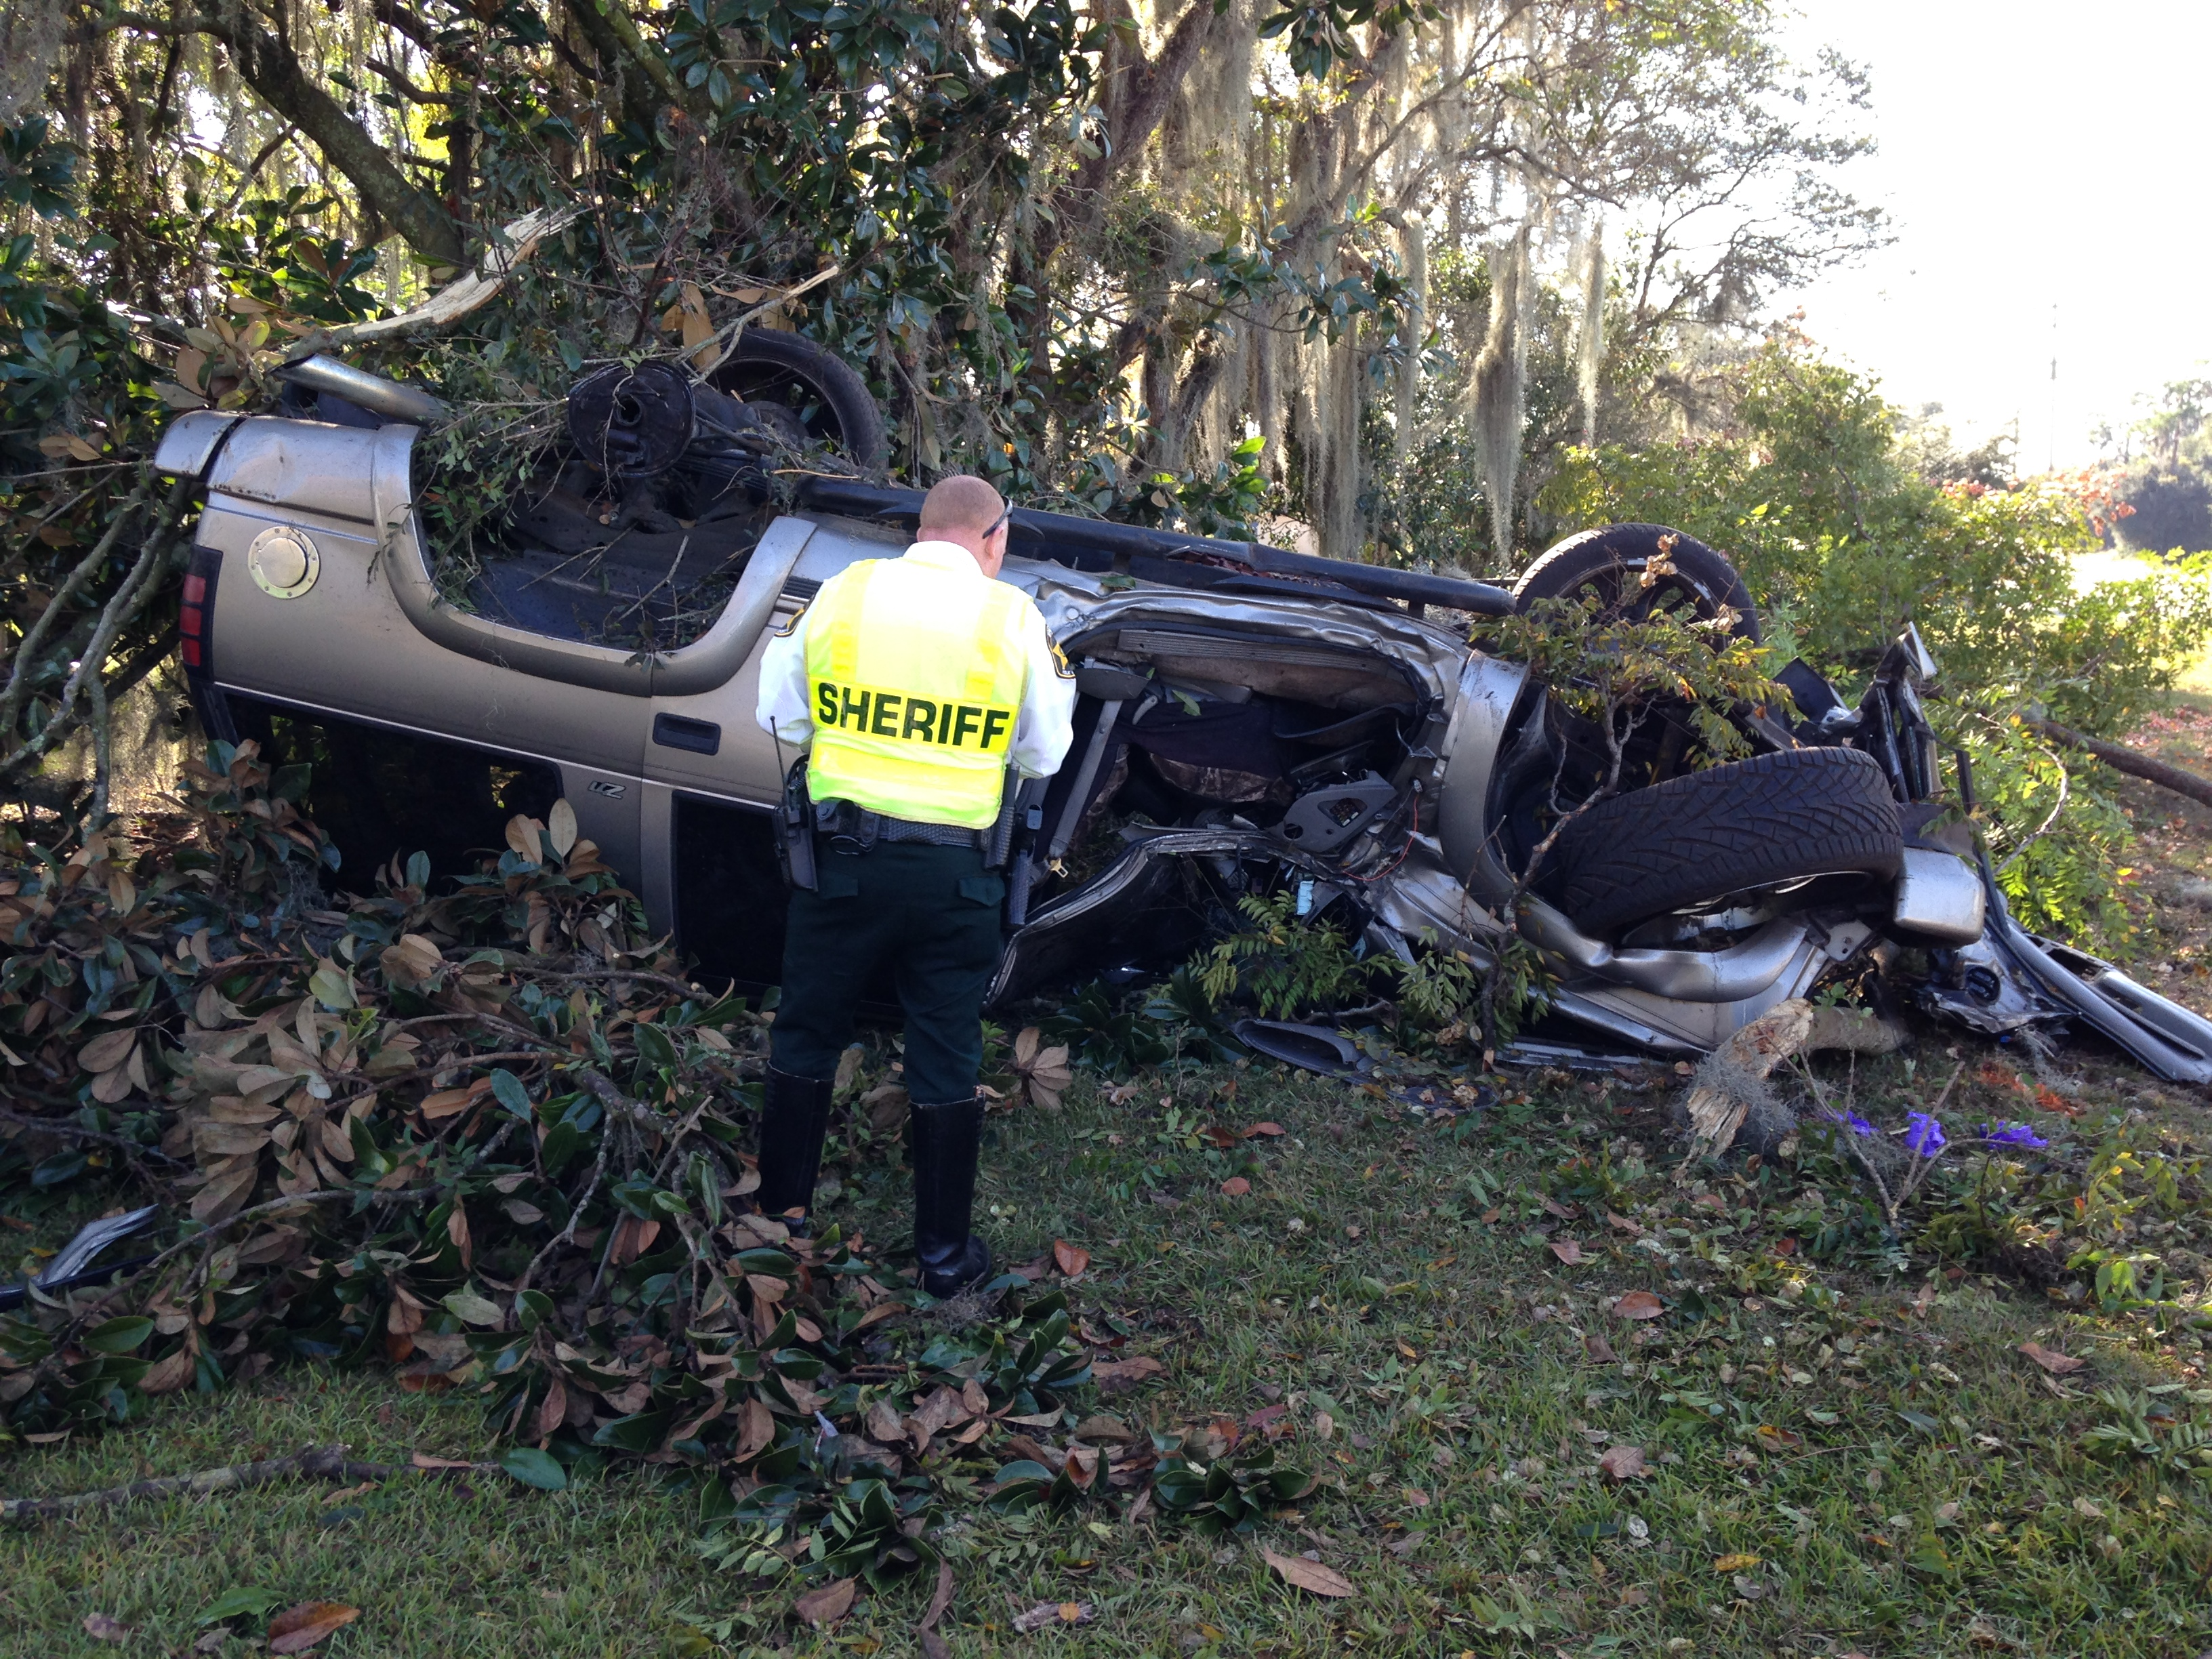 80 Ft Rd crash Bartow, Florida, Amanda Sue Reedy, crash, ocala, polk county, polk county news